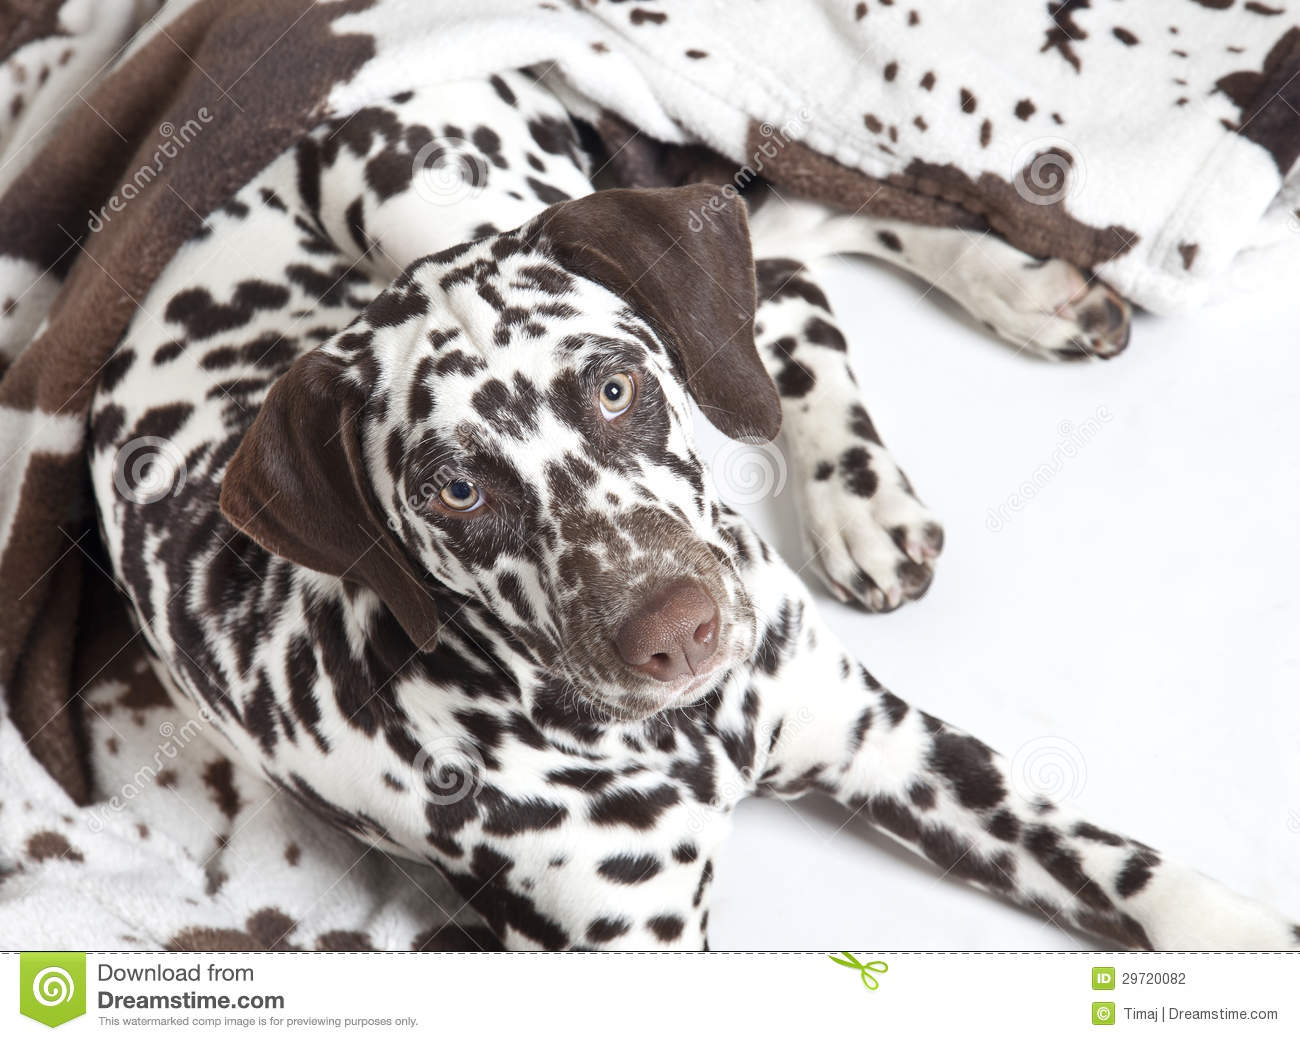 Travel Dog Bed >> 22 Awesome Brown Dalmatian Dog Photos